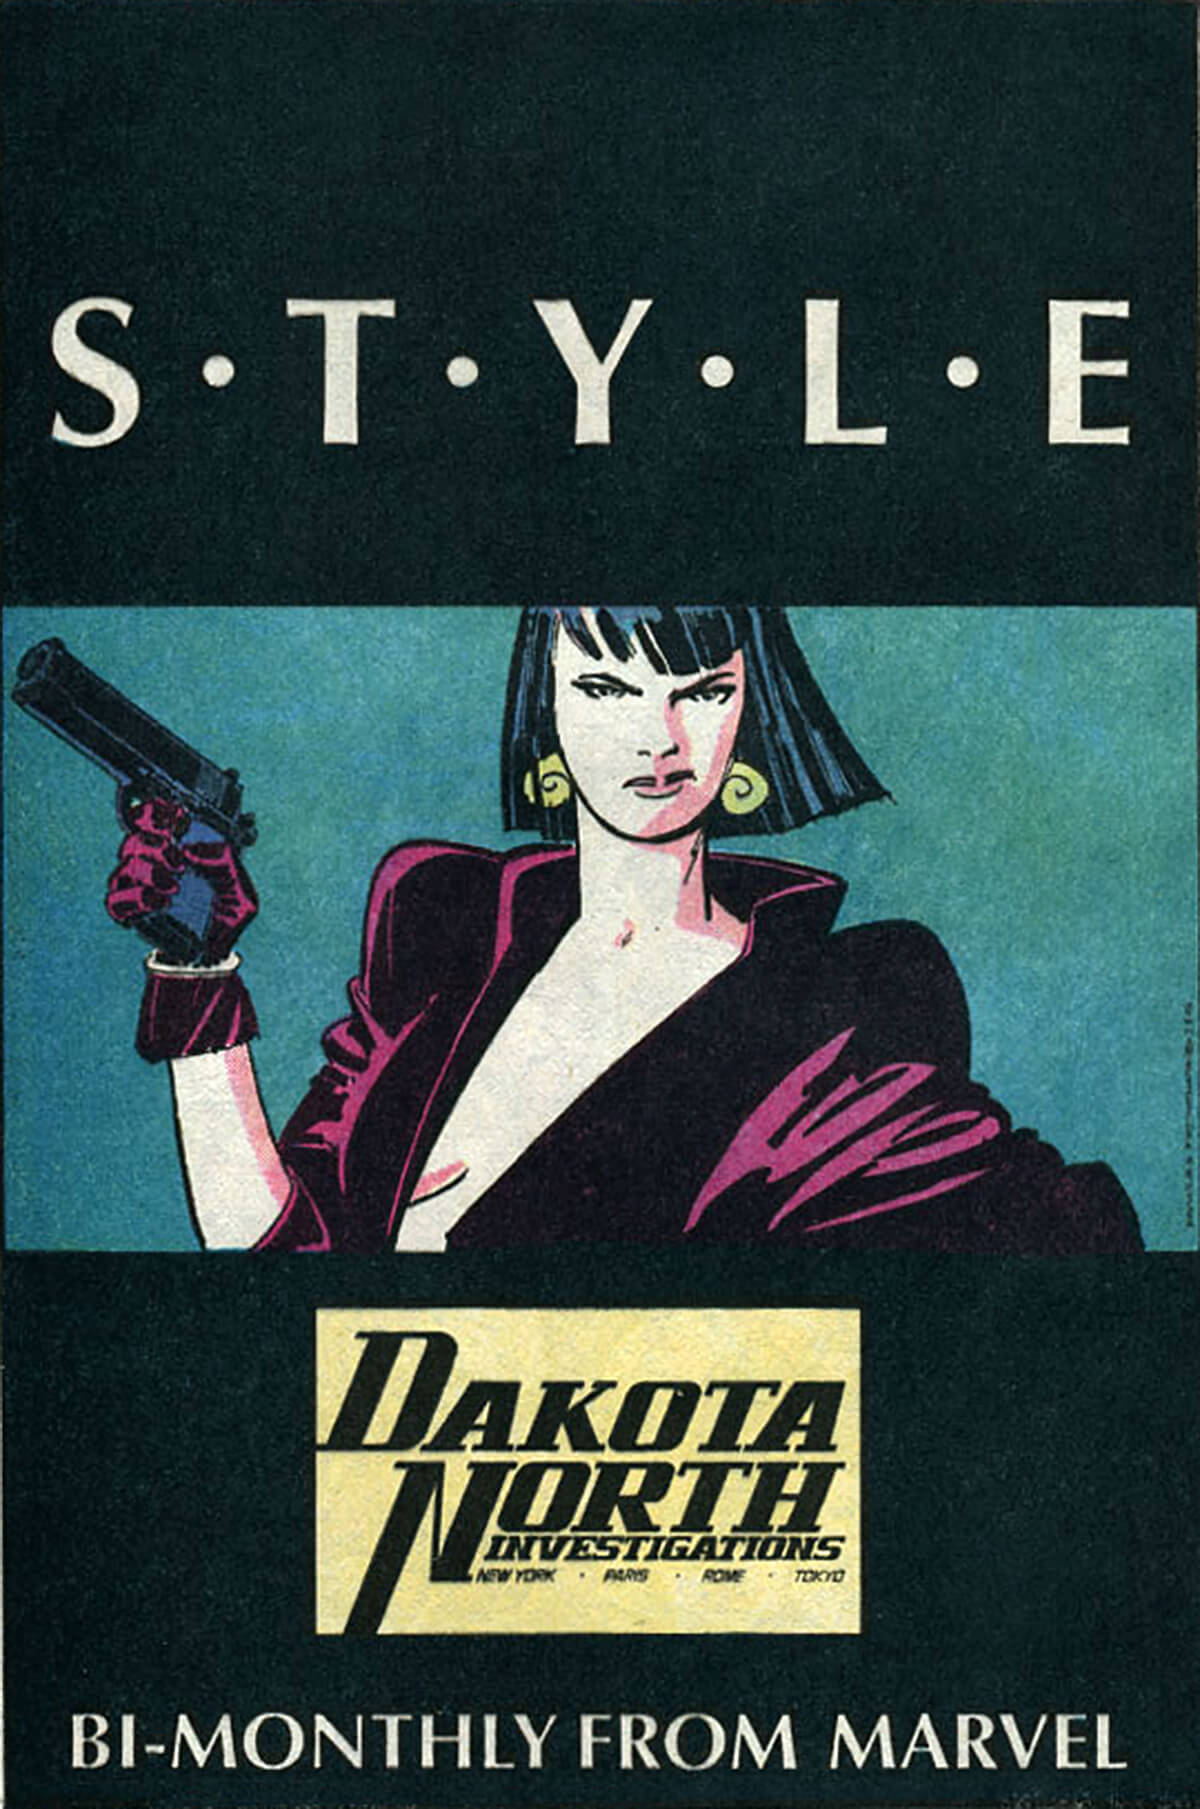 Dakota North Style by Tony Salmons